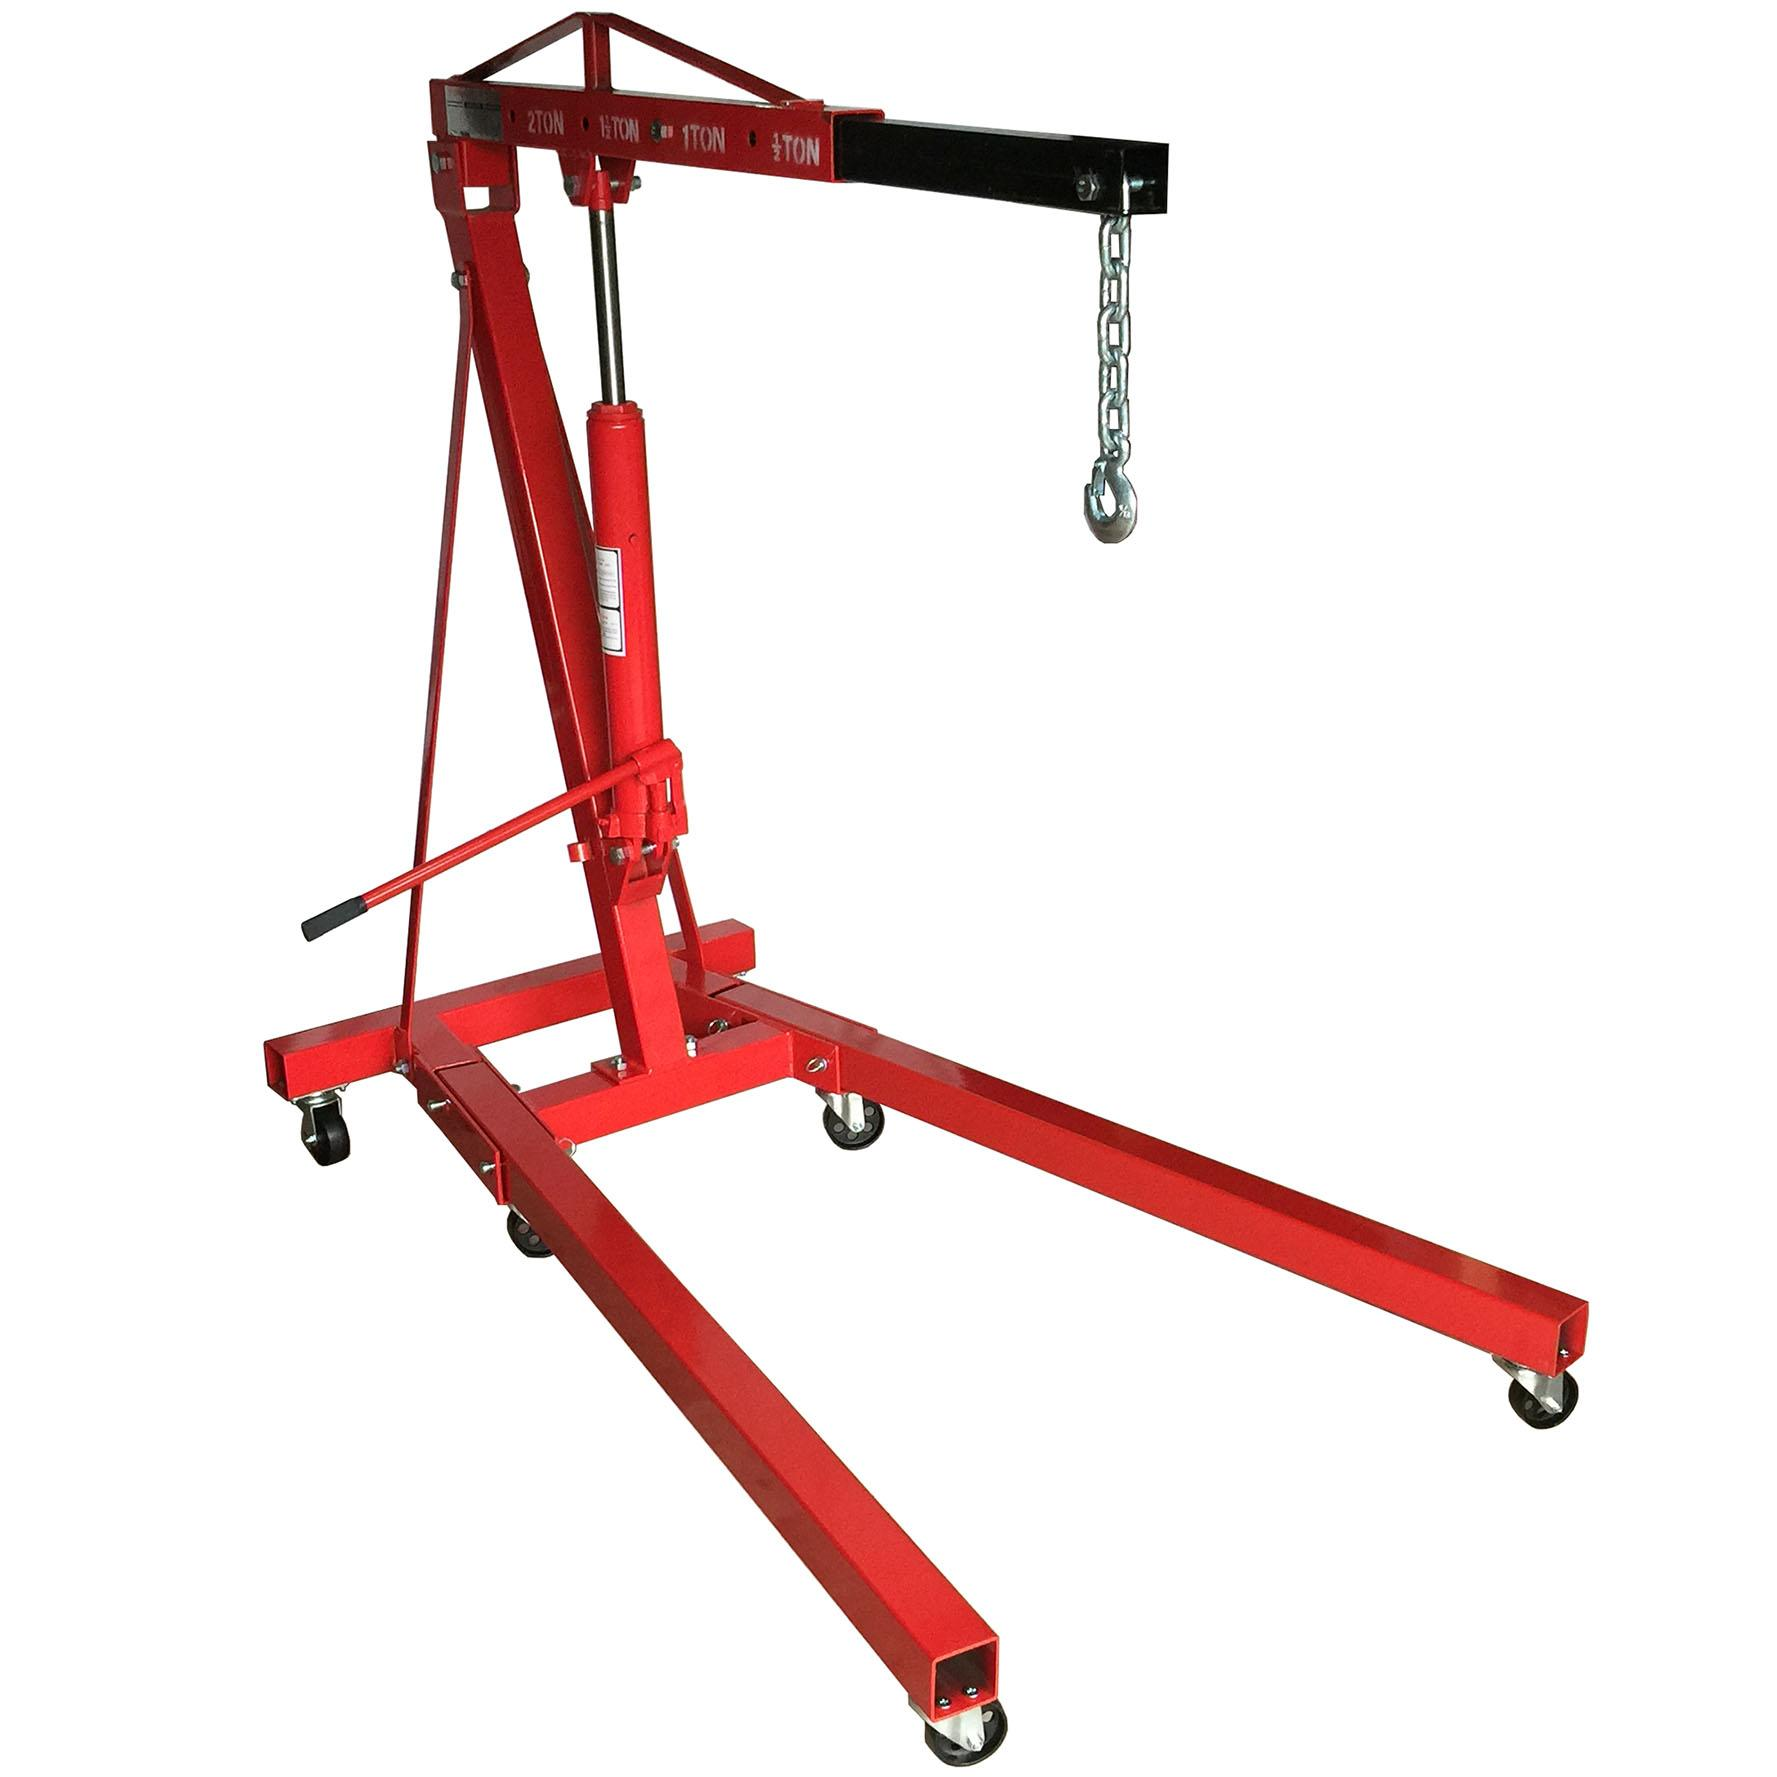 S-Ks Tools Usa Jm-71001 Heavy Duty 1 Tons Folding Engine Crane Hoist (black/red) By Lucrest Marketing.